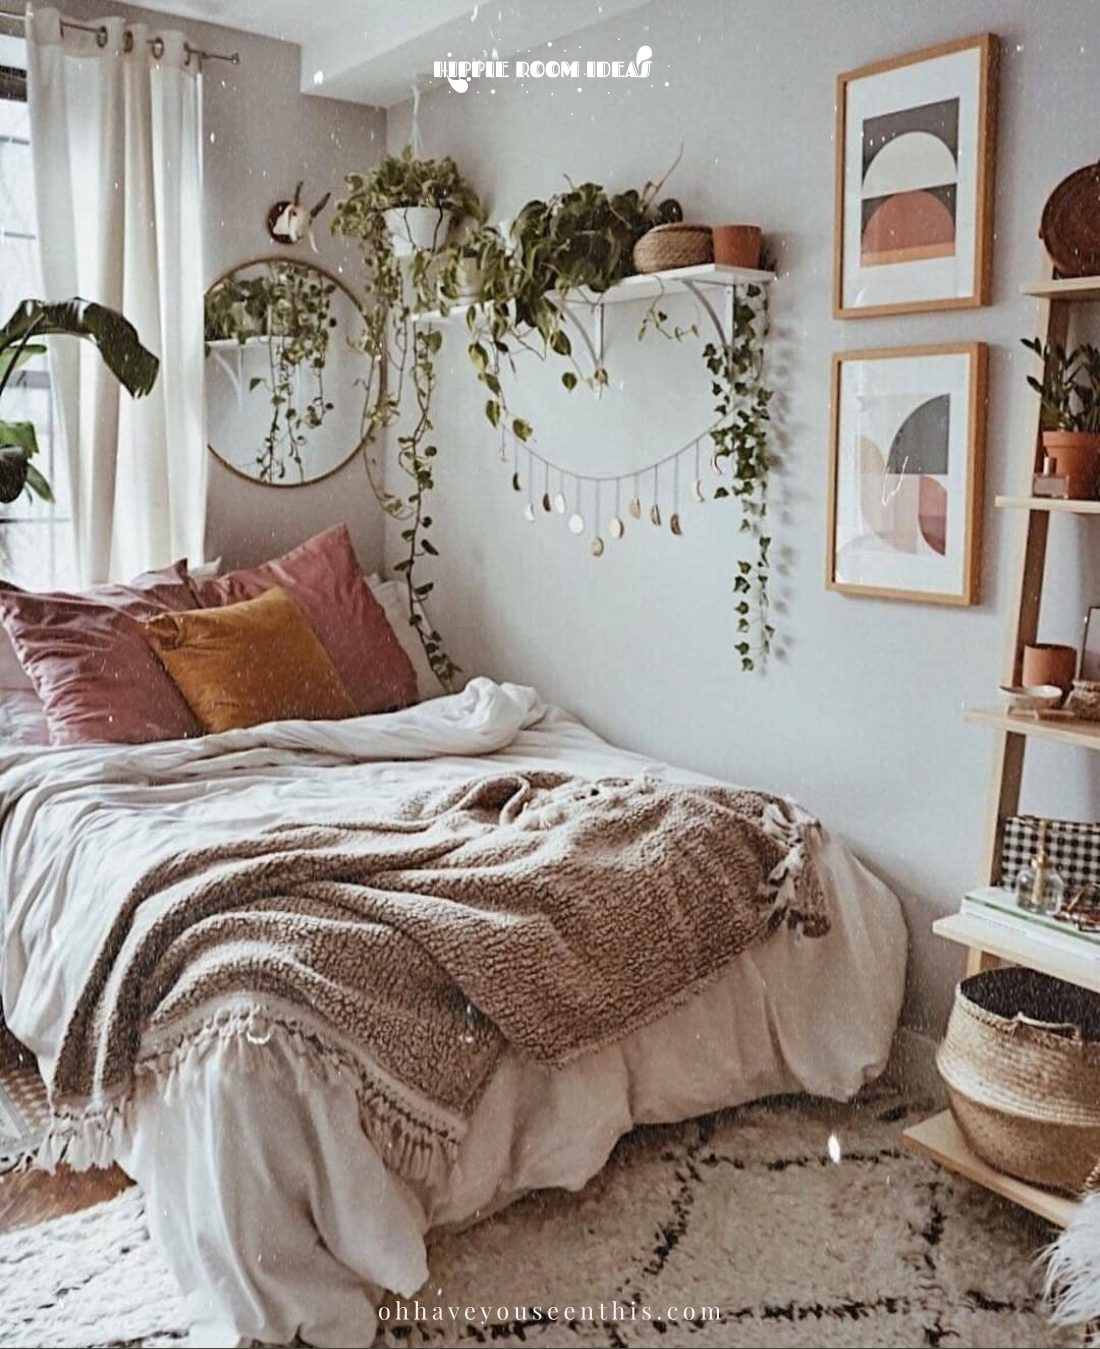 20 Most Popular Hippie Room Ideas In 2020 The Good Luck Duck